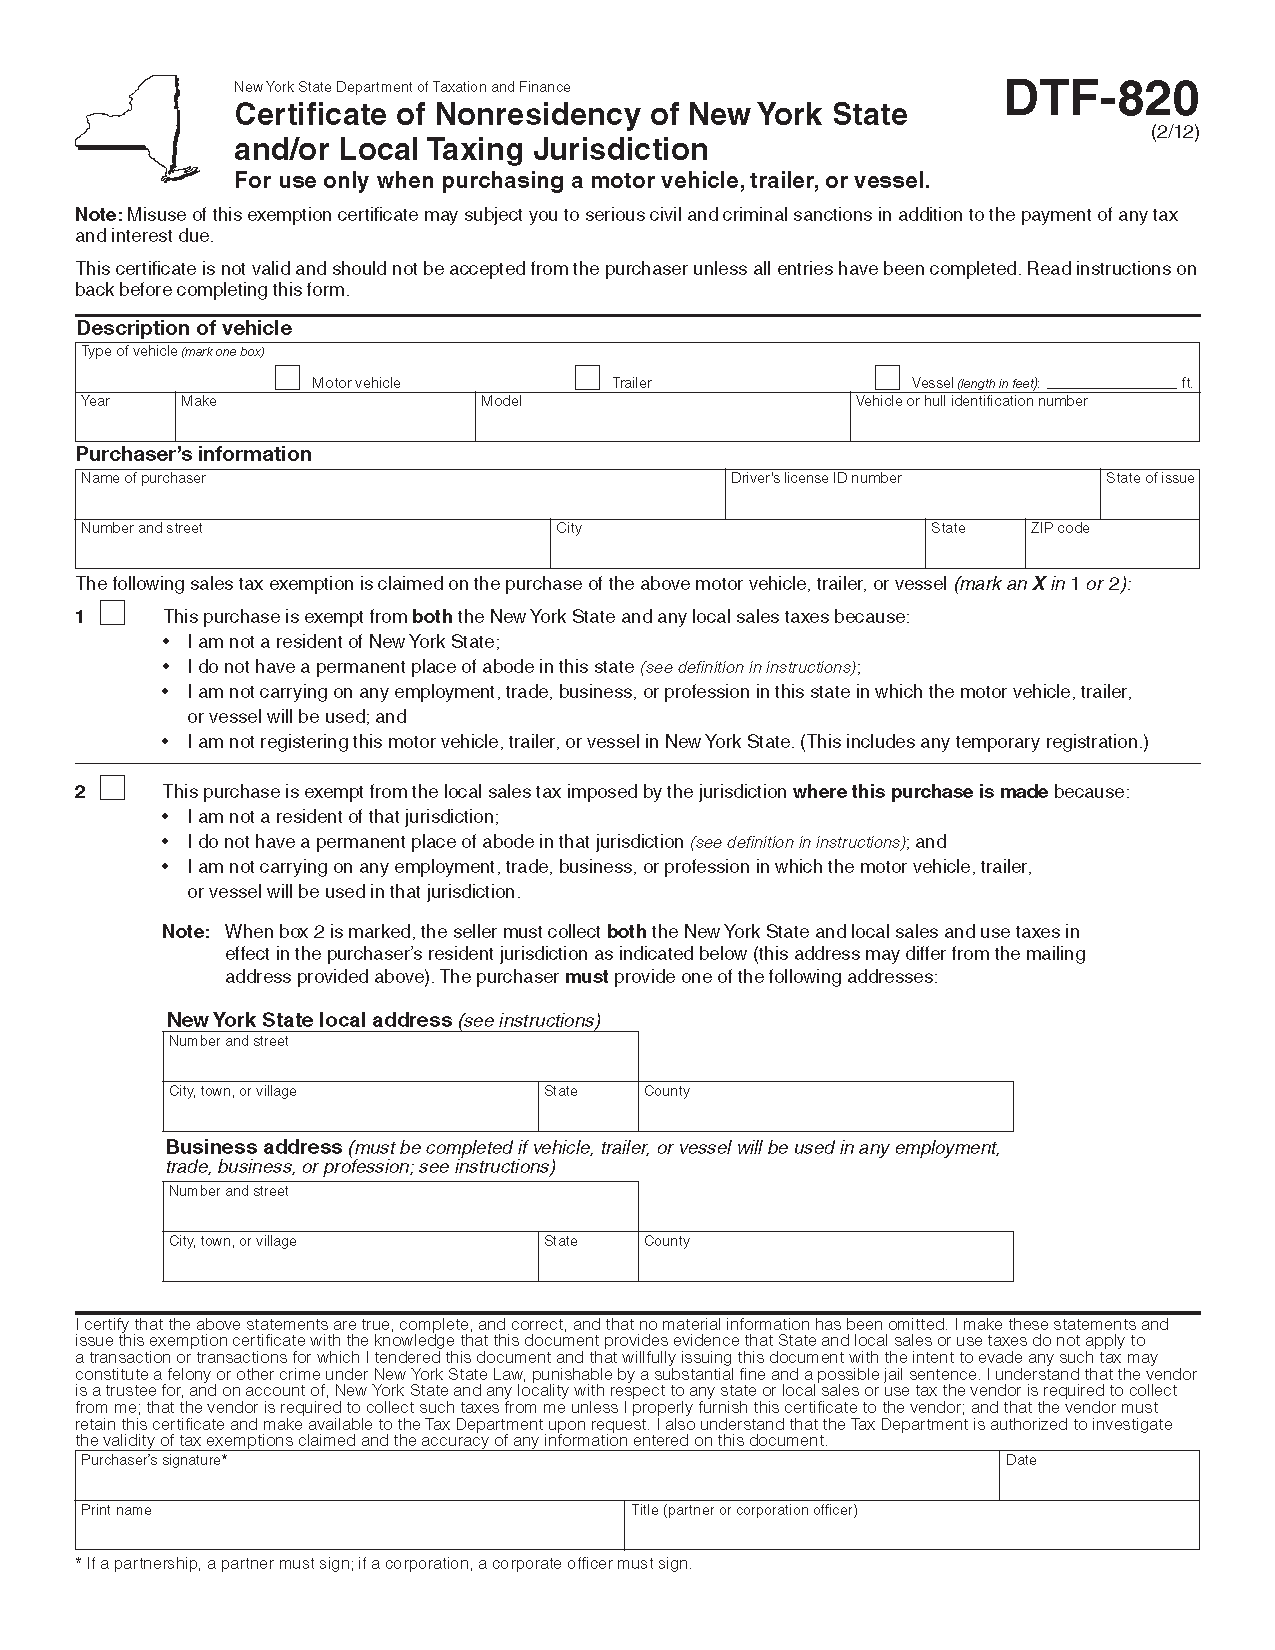 Nys motor vehicle forms for Dr2173 motor vehicle bill of sale